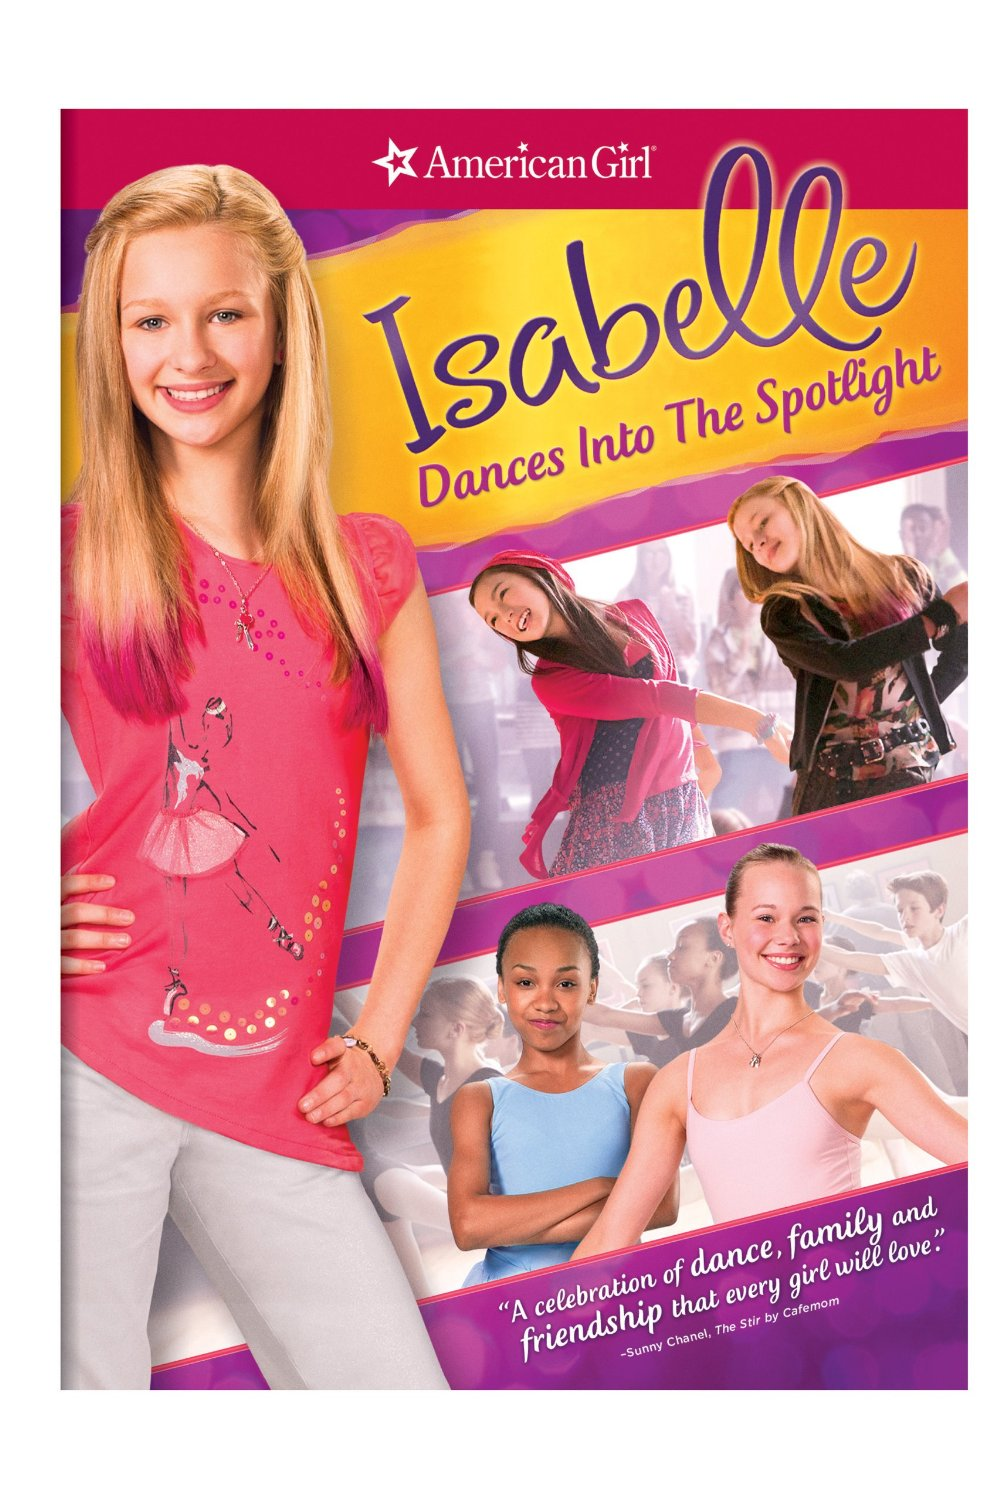 Isabelle Dances Into The Spotlight (2014)